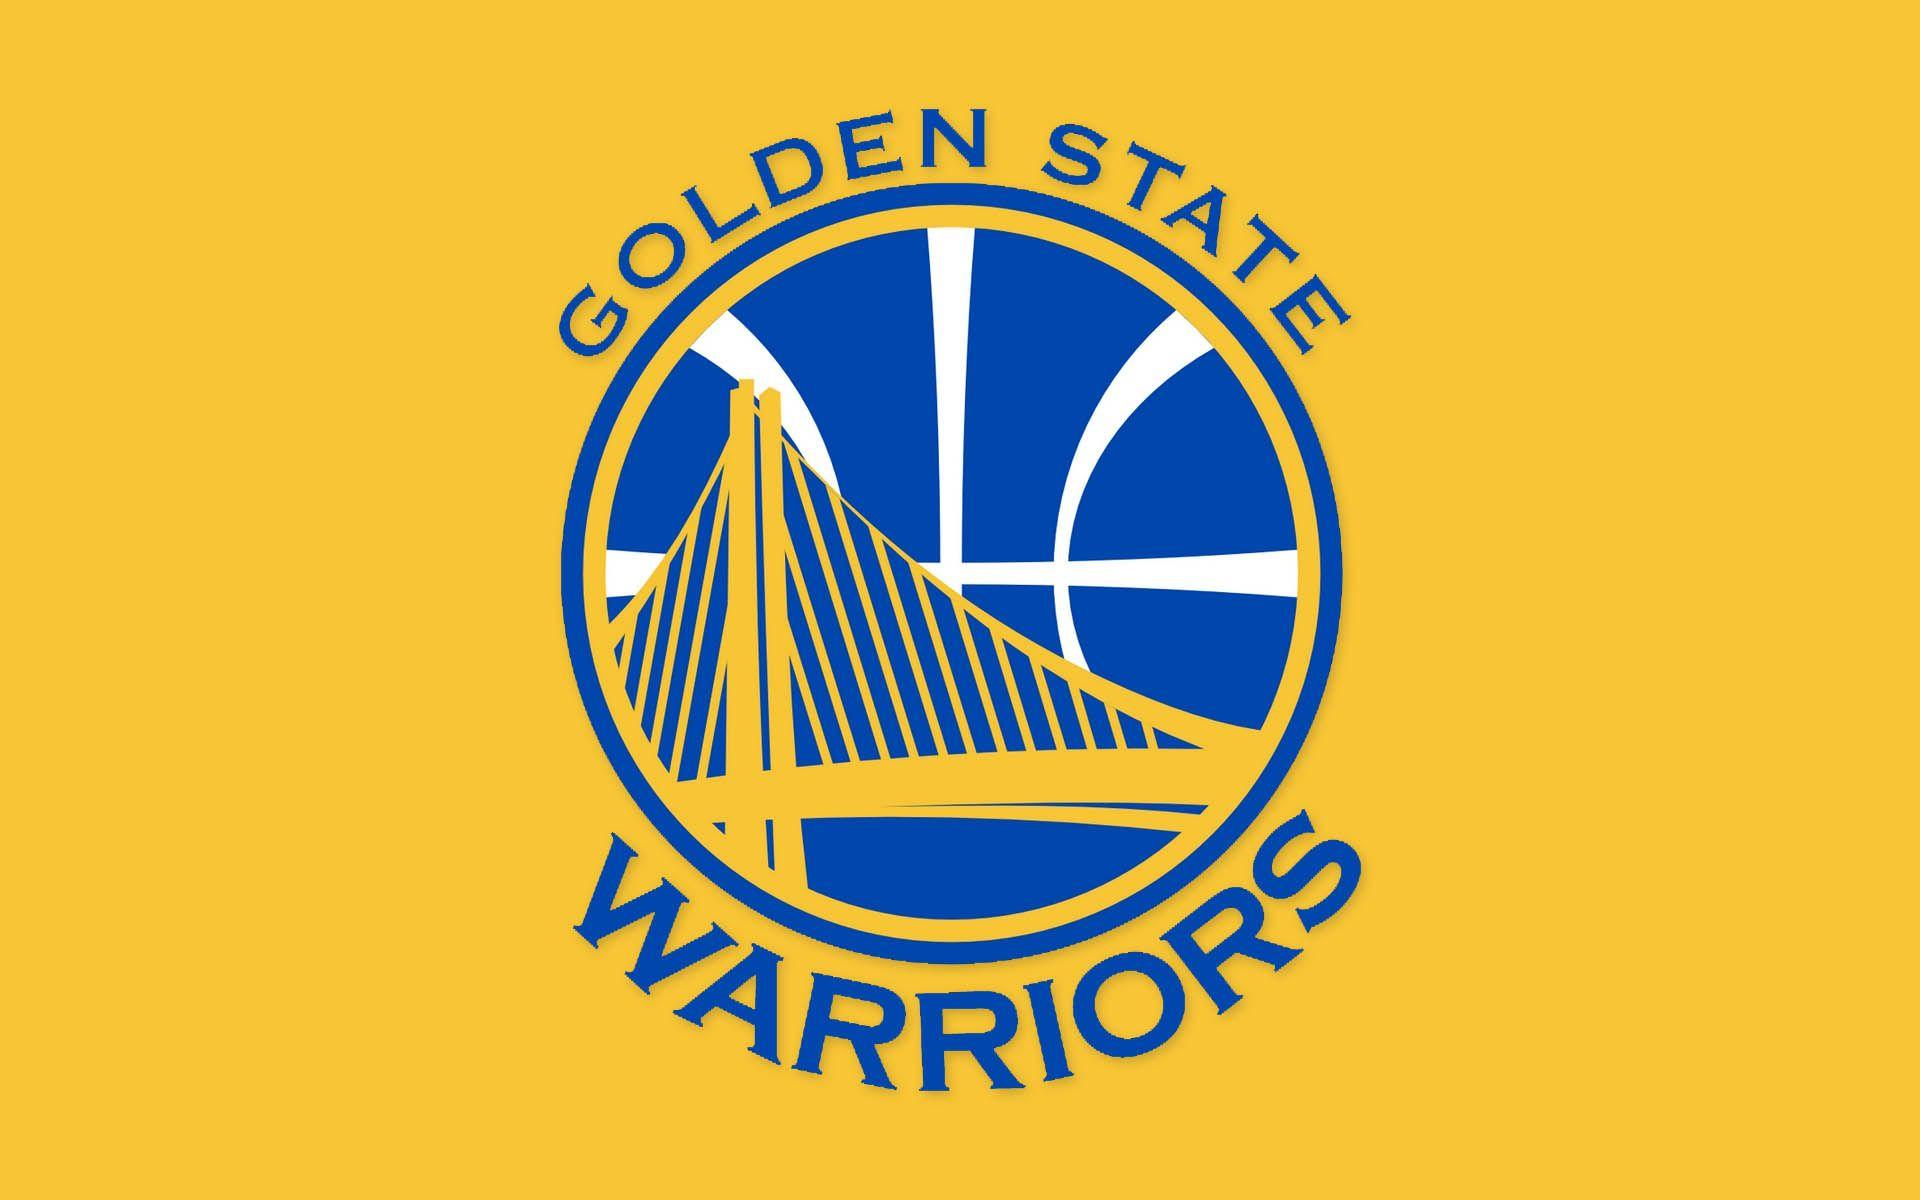 GOLDEN STATE WARRIORS nba basketball